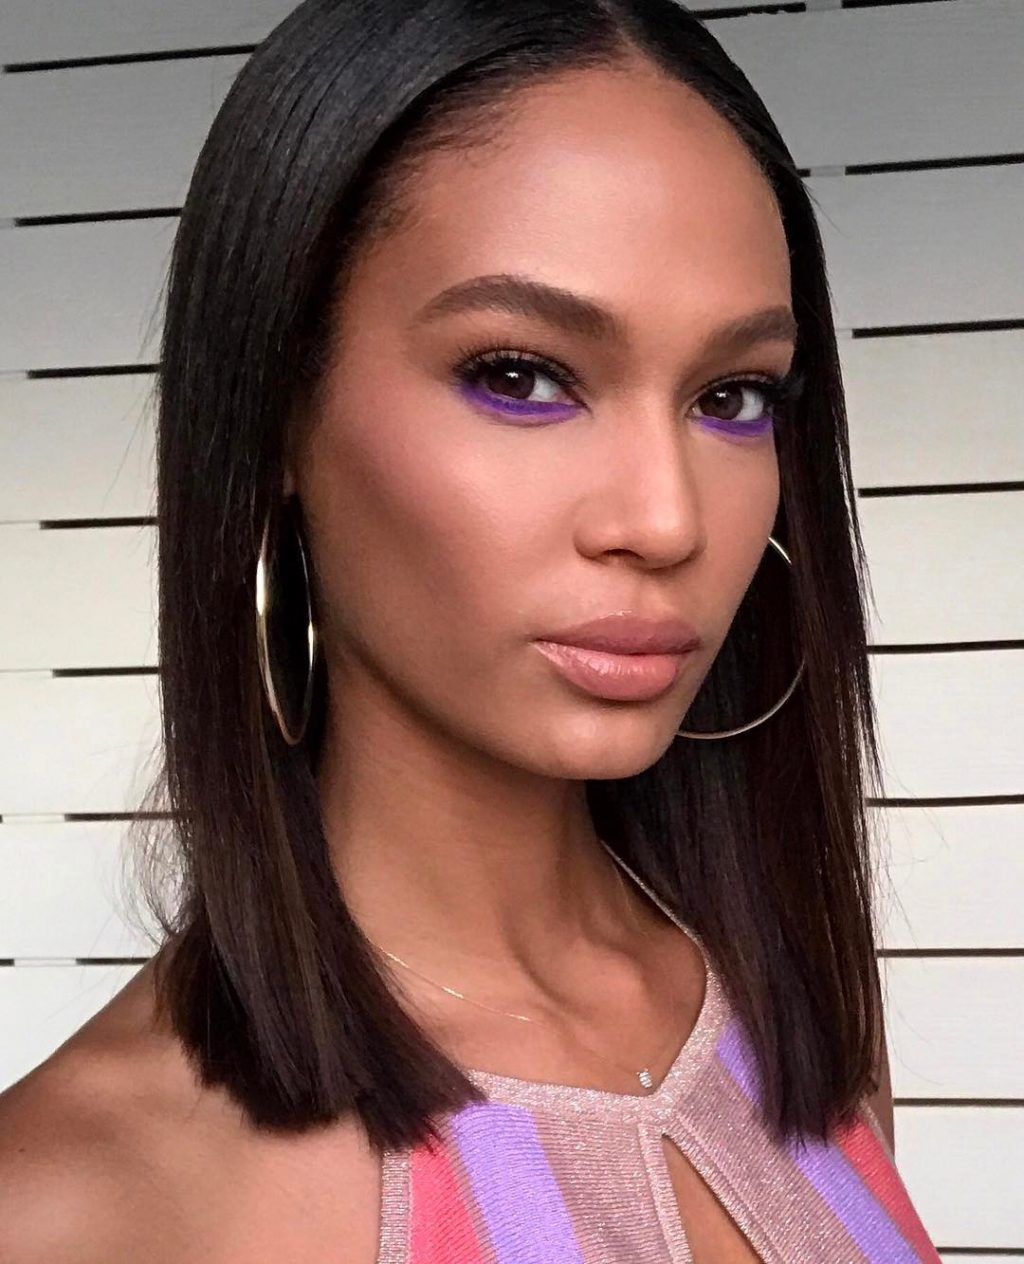 The Color Purple: 10 Beauty Buys to Channel 2018's Color of the Year